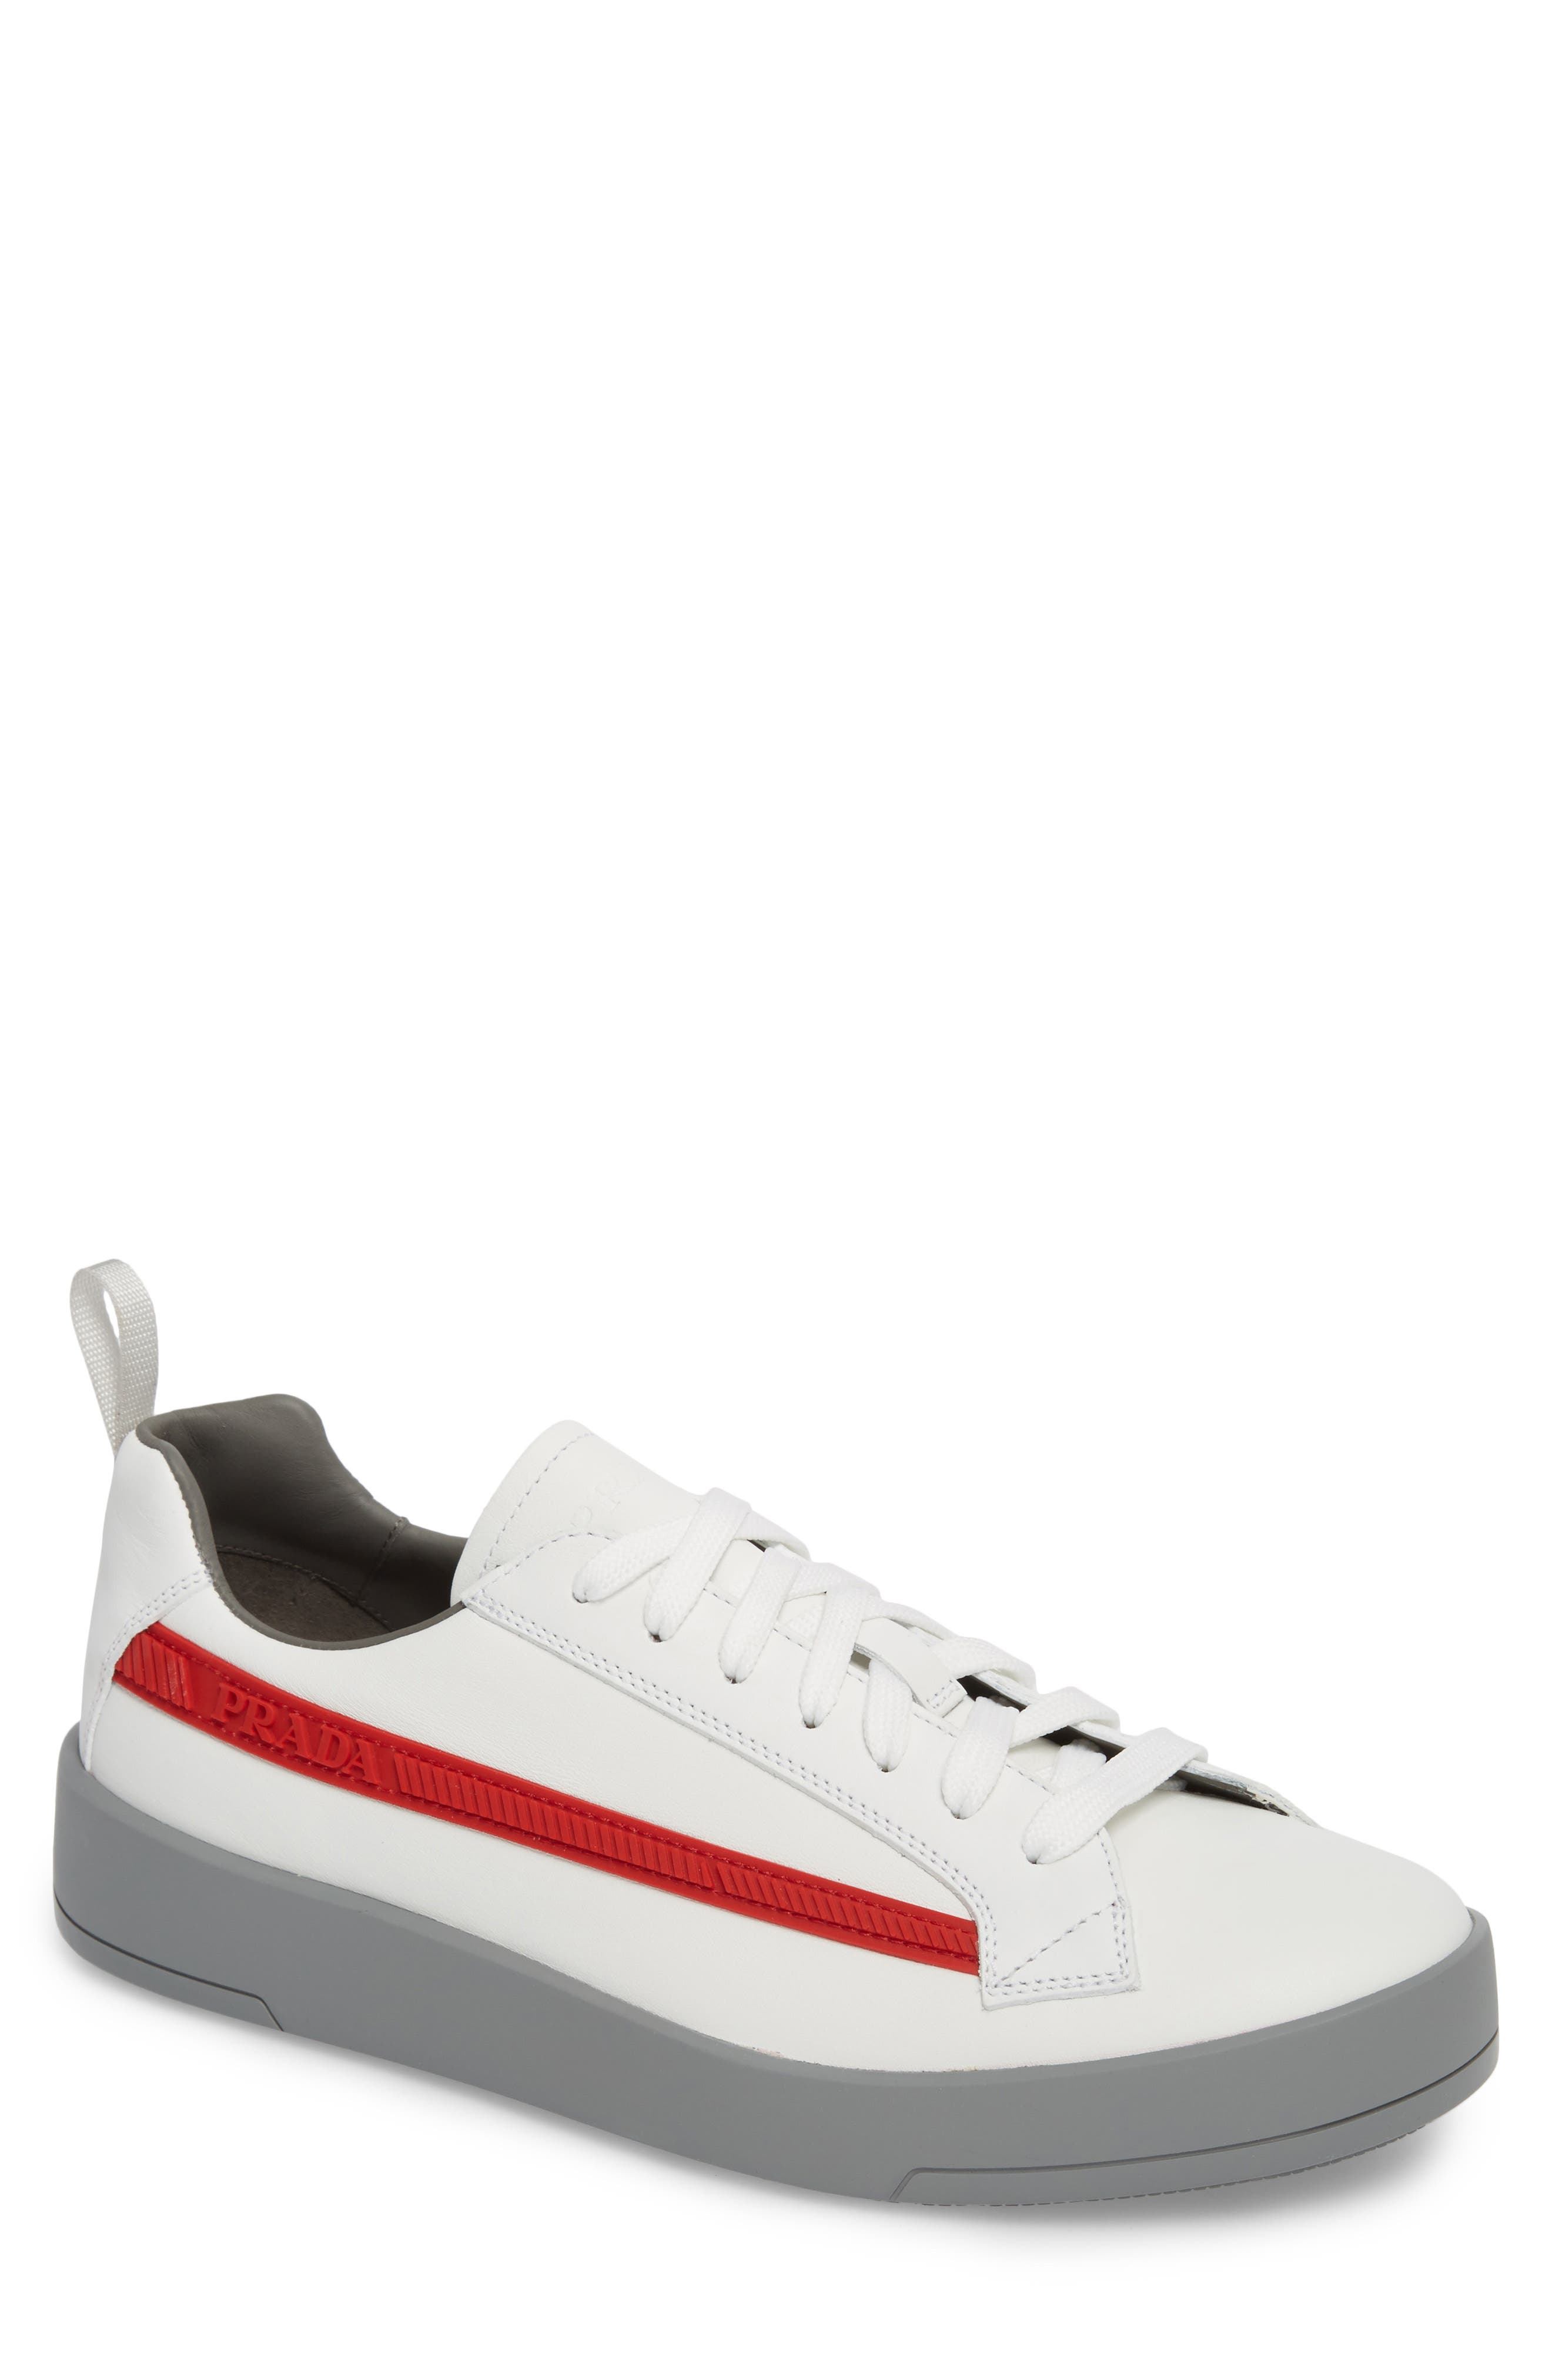 Linea Rossa Sneaker,                             Main thumbnail 1, color,                             Bianco